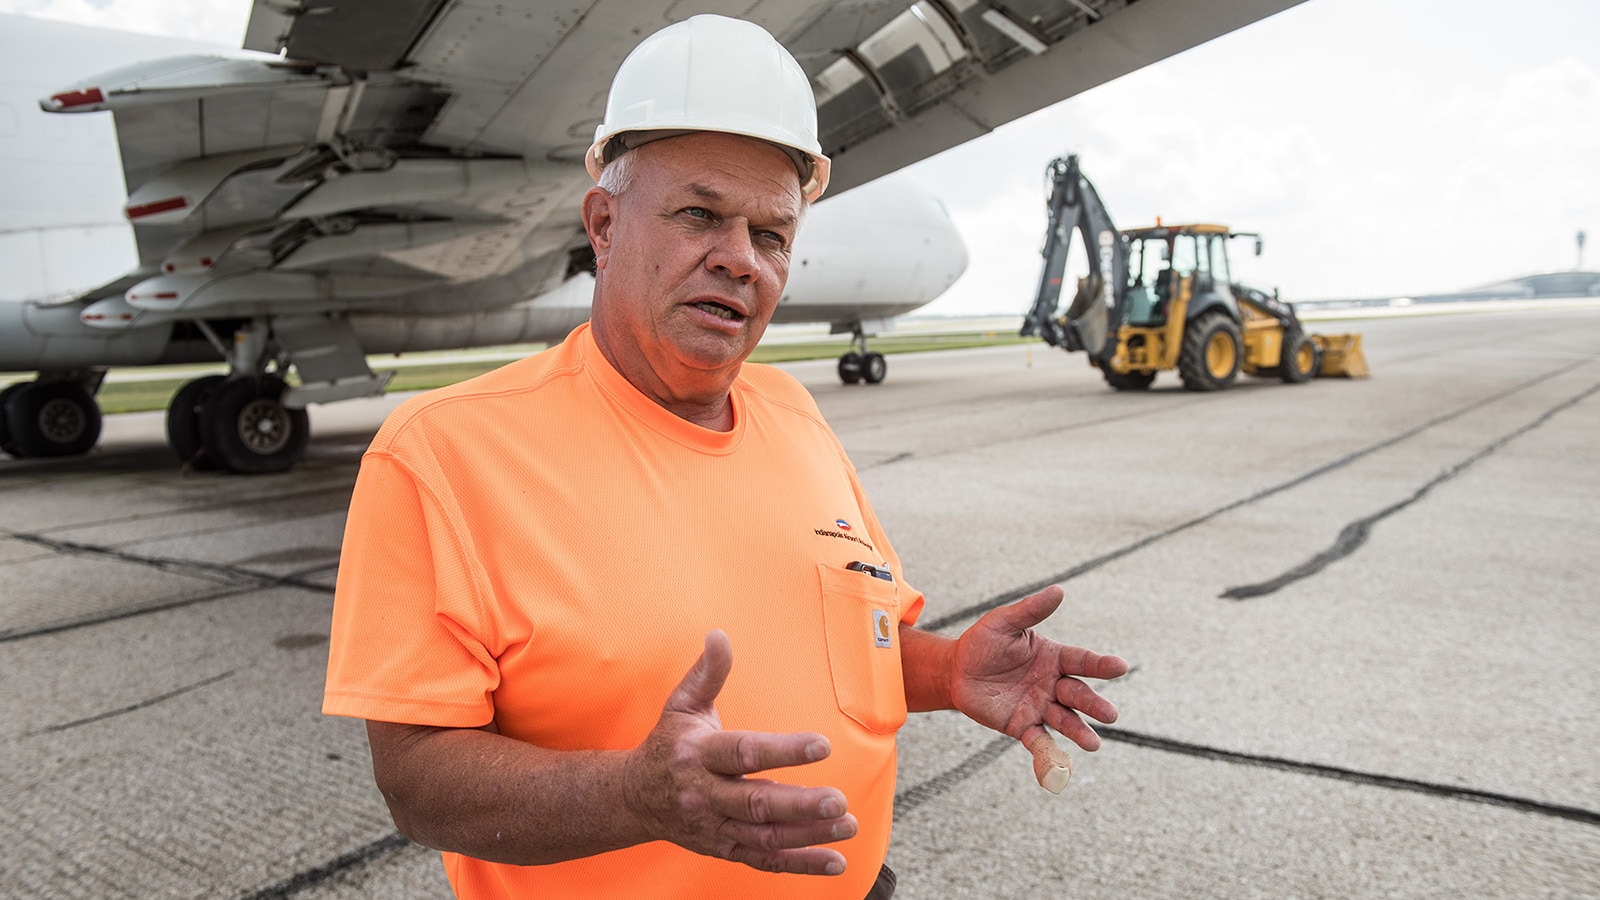 George Kestler stands under the wing of a plane with the 710L Backhoe in the background